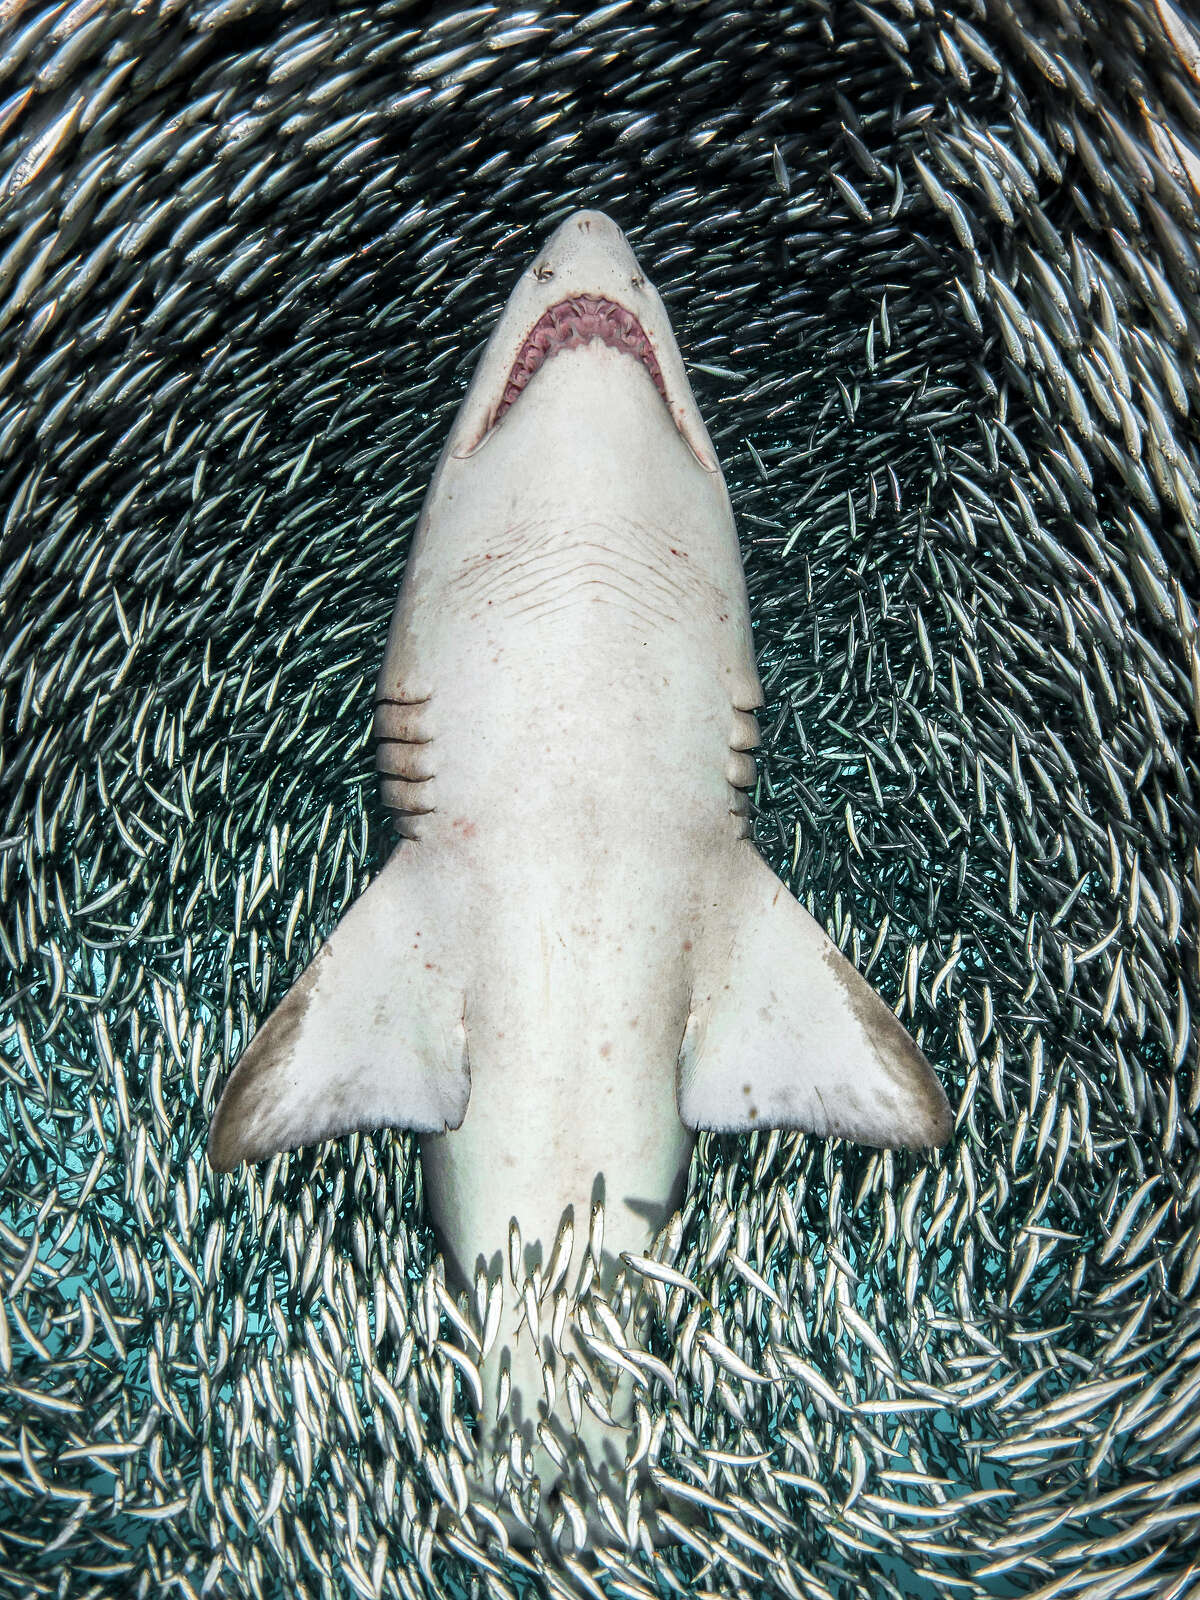 Harmony by Tanya Houppermans A sand tiger shark (Carcharias taurus) swims through a massive bait ball of tiny fish above the wreck of the Caribsea off the coast of North Carolina, USA.